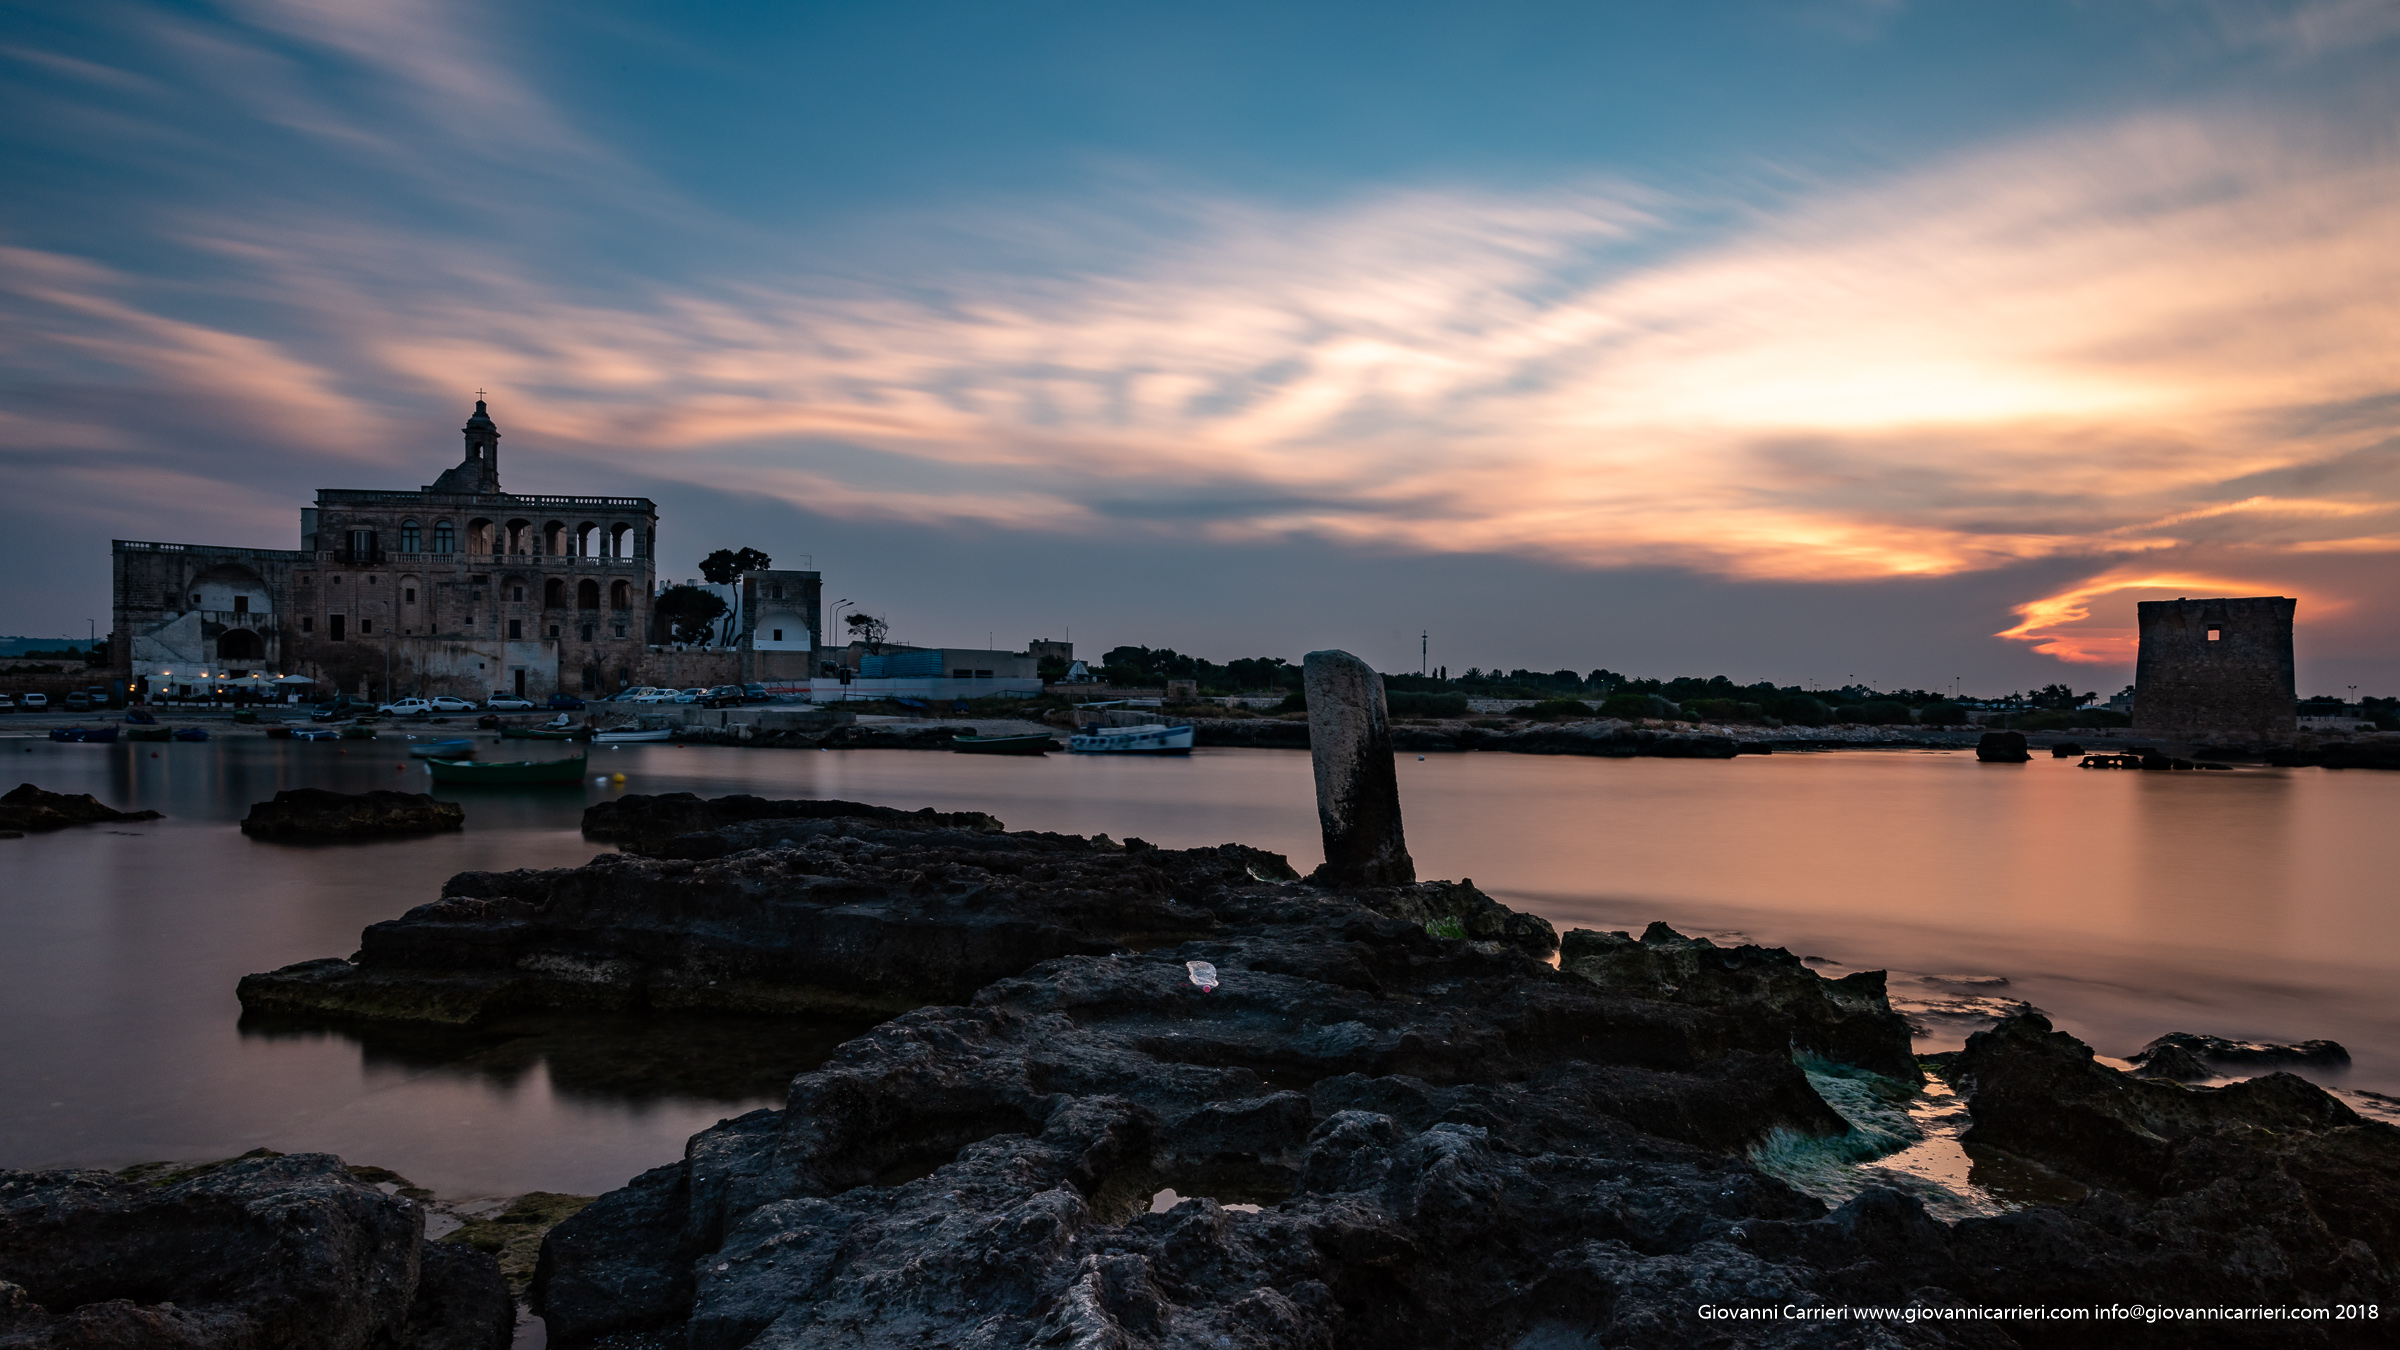 An overview at sunset of the Abbey of San Vito, Polignano a mare